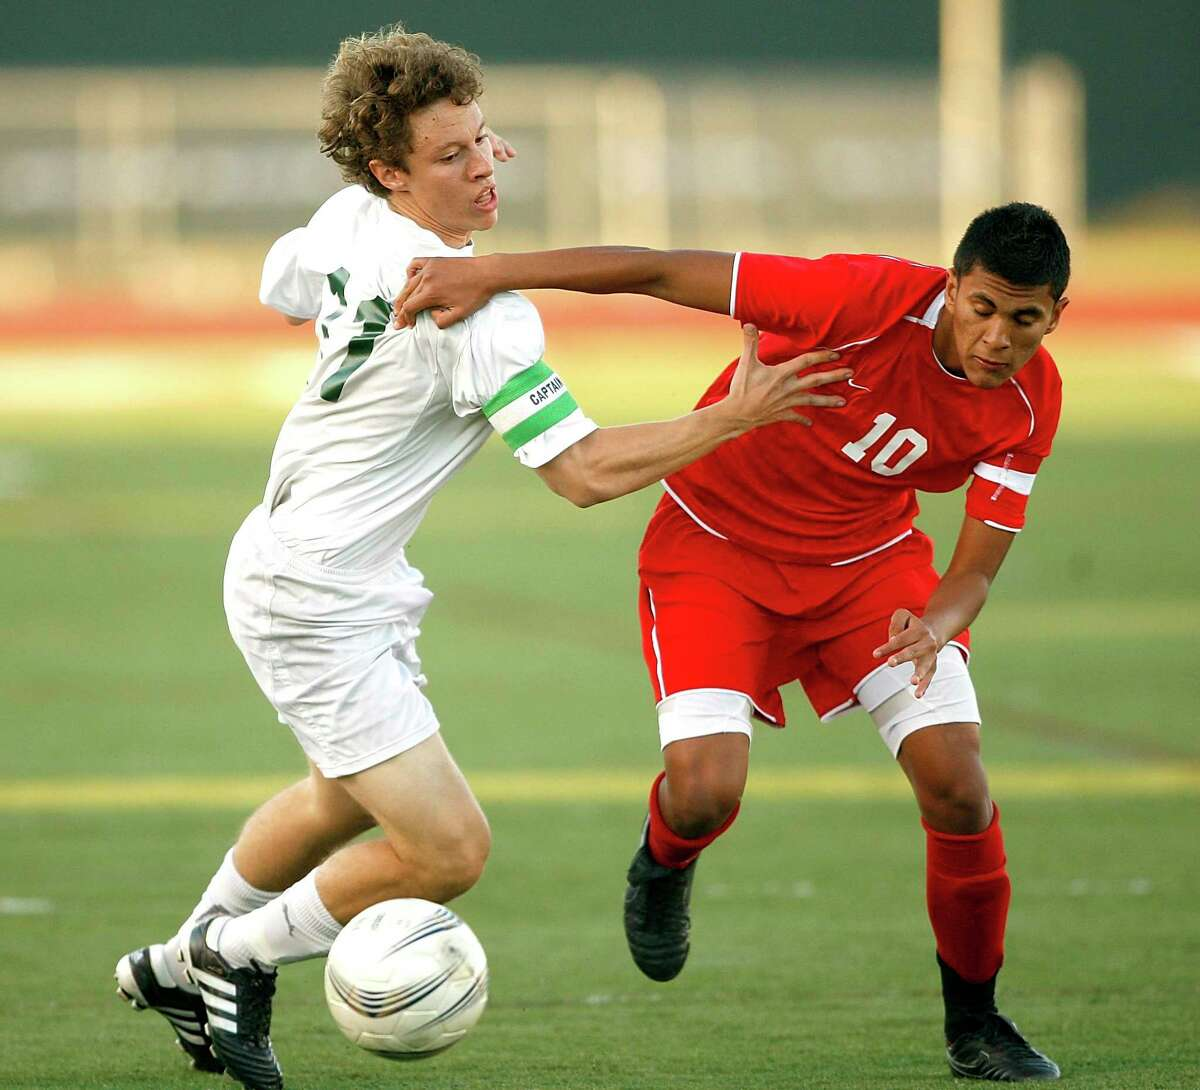 Strake's James Garcia-Prats, left and Katy's Adrian Mendoza battle for the ball during third round of Class 5A soccer playoffs between Katy and Strake Jesuit Tuesday Mar. 30, 2010 in Houston.